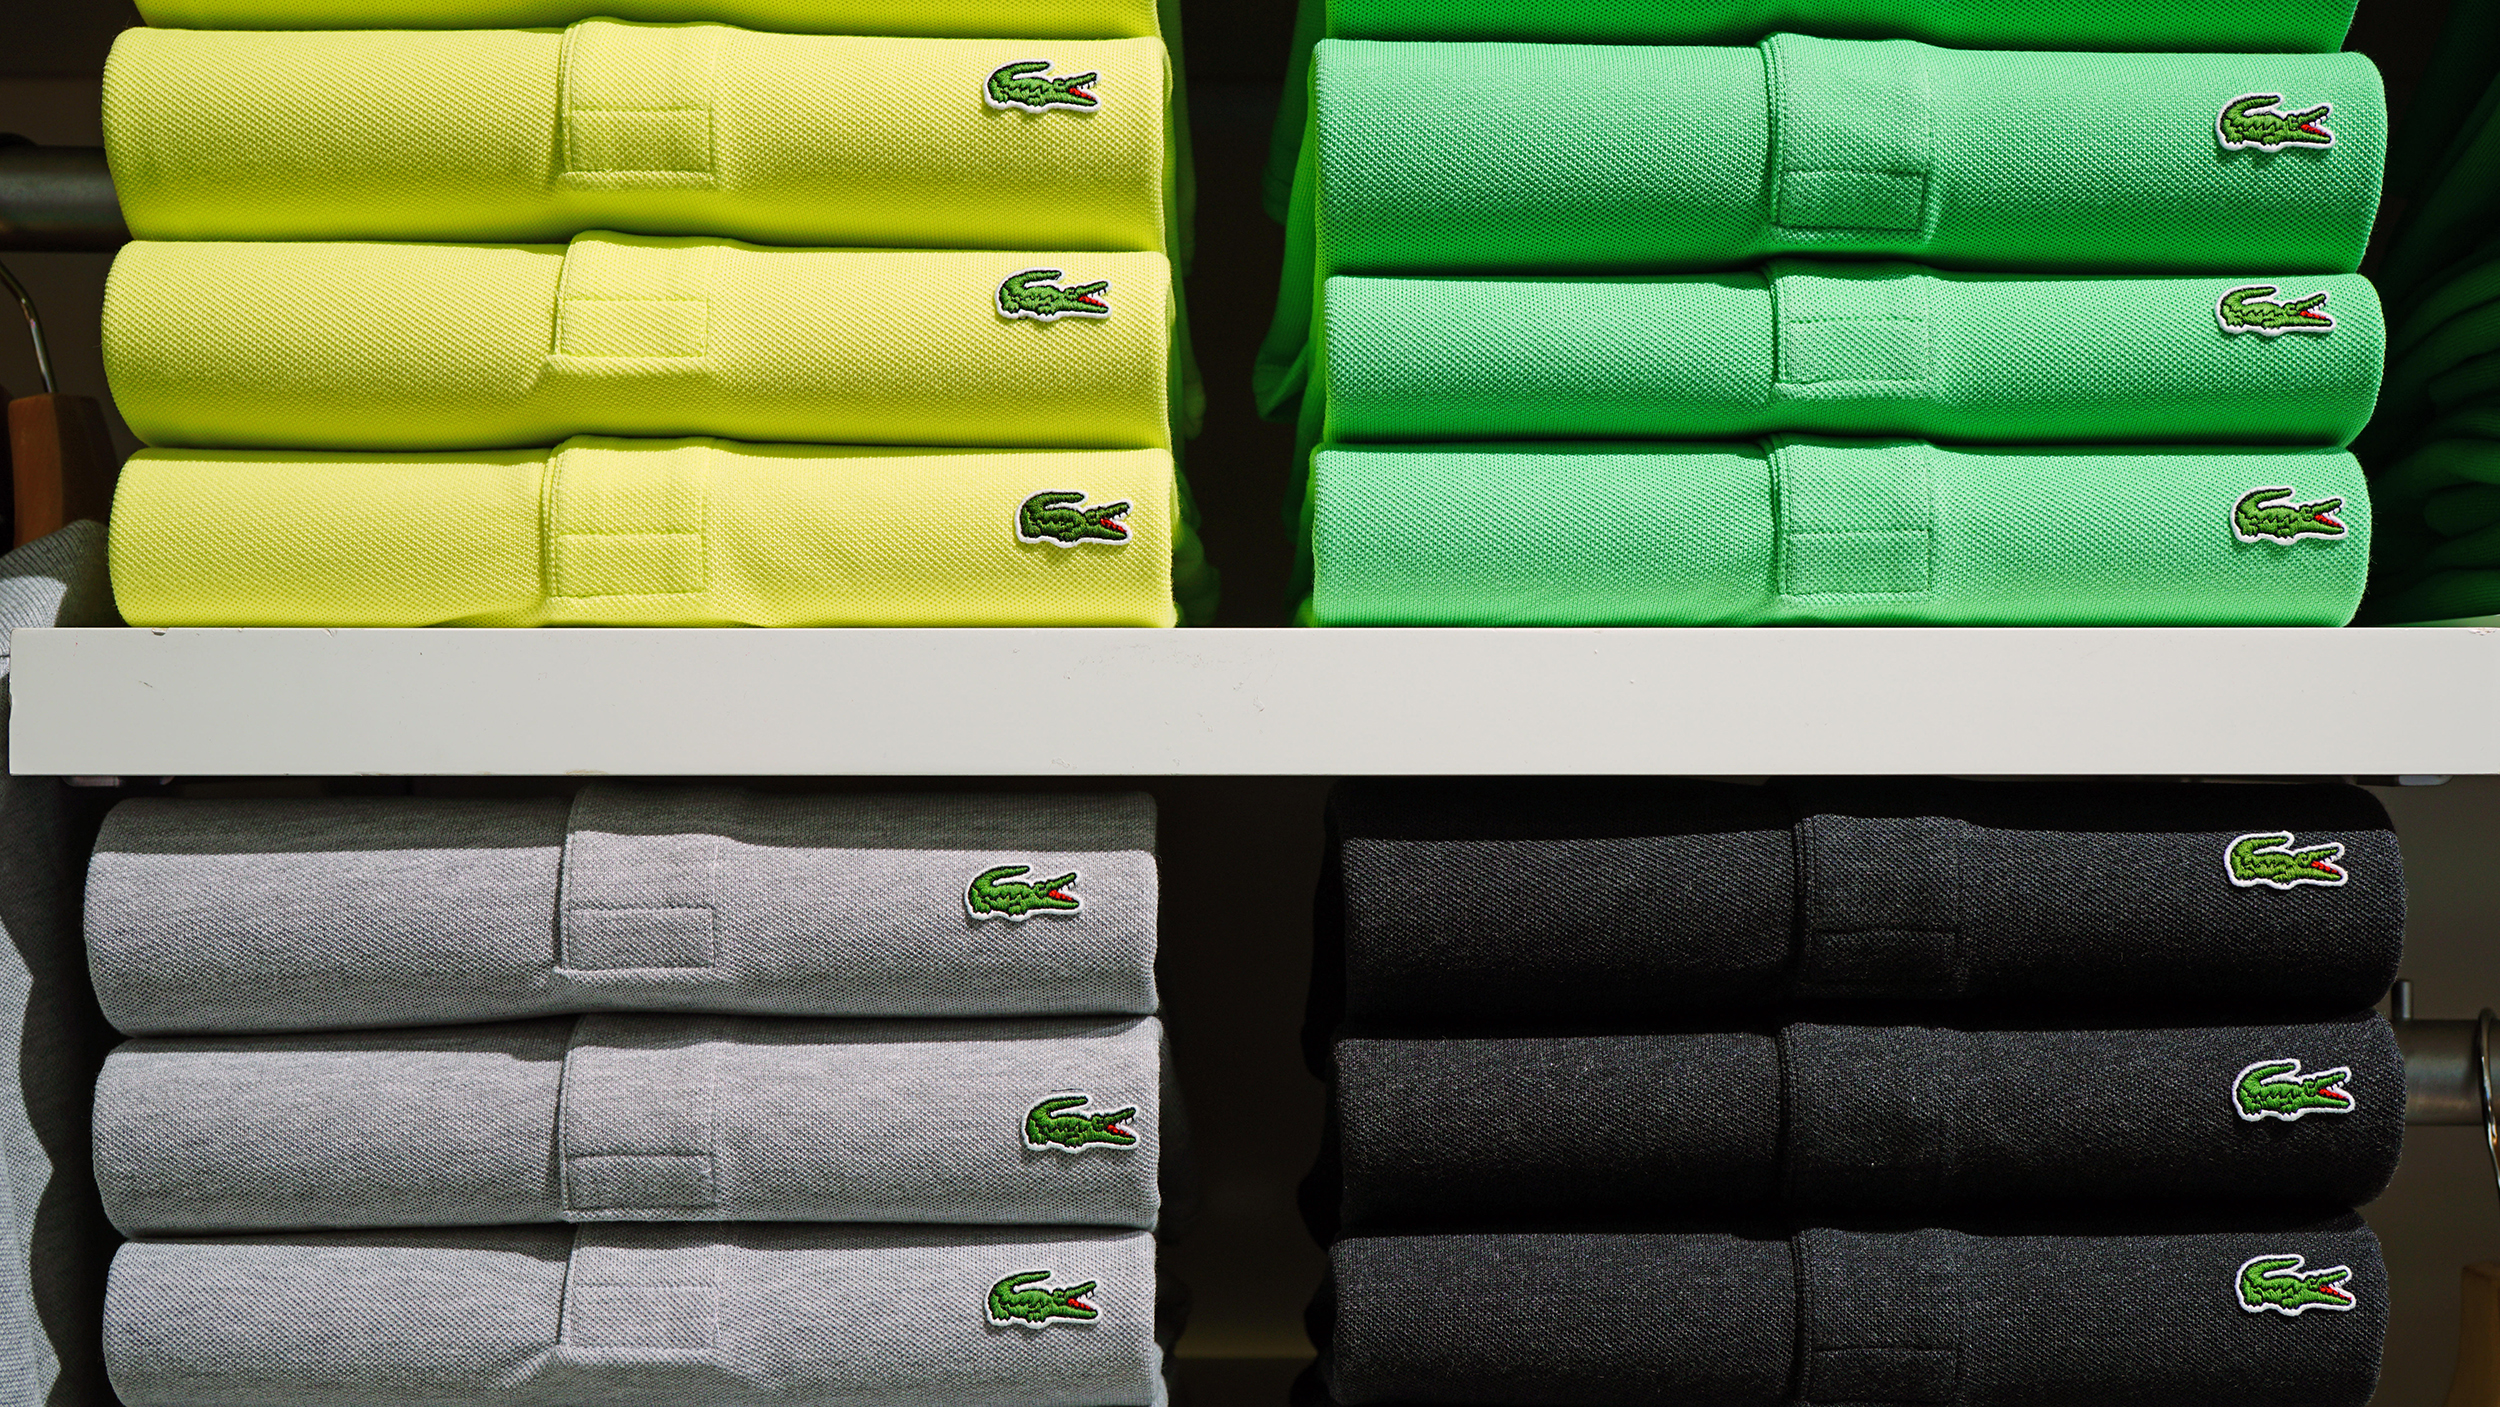 903ee03d435c Lacoste replaces crocodile logo with endangered species